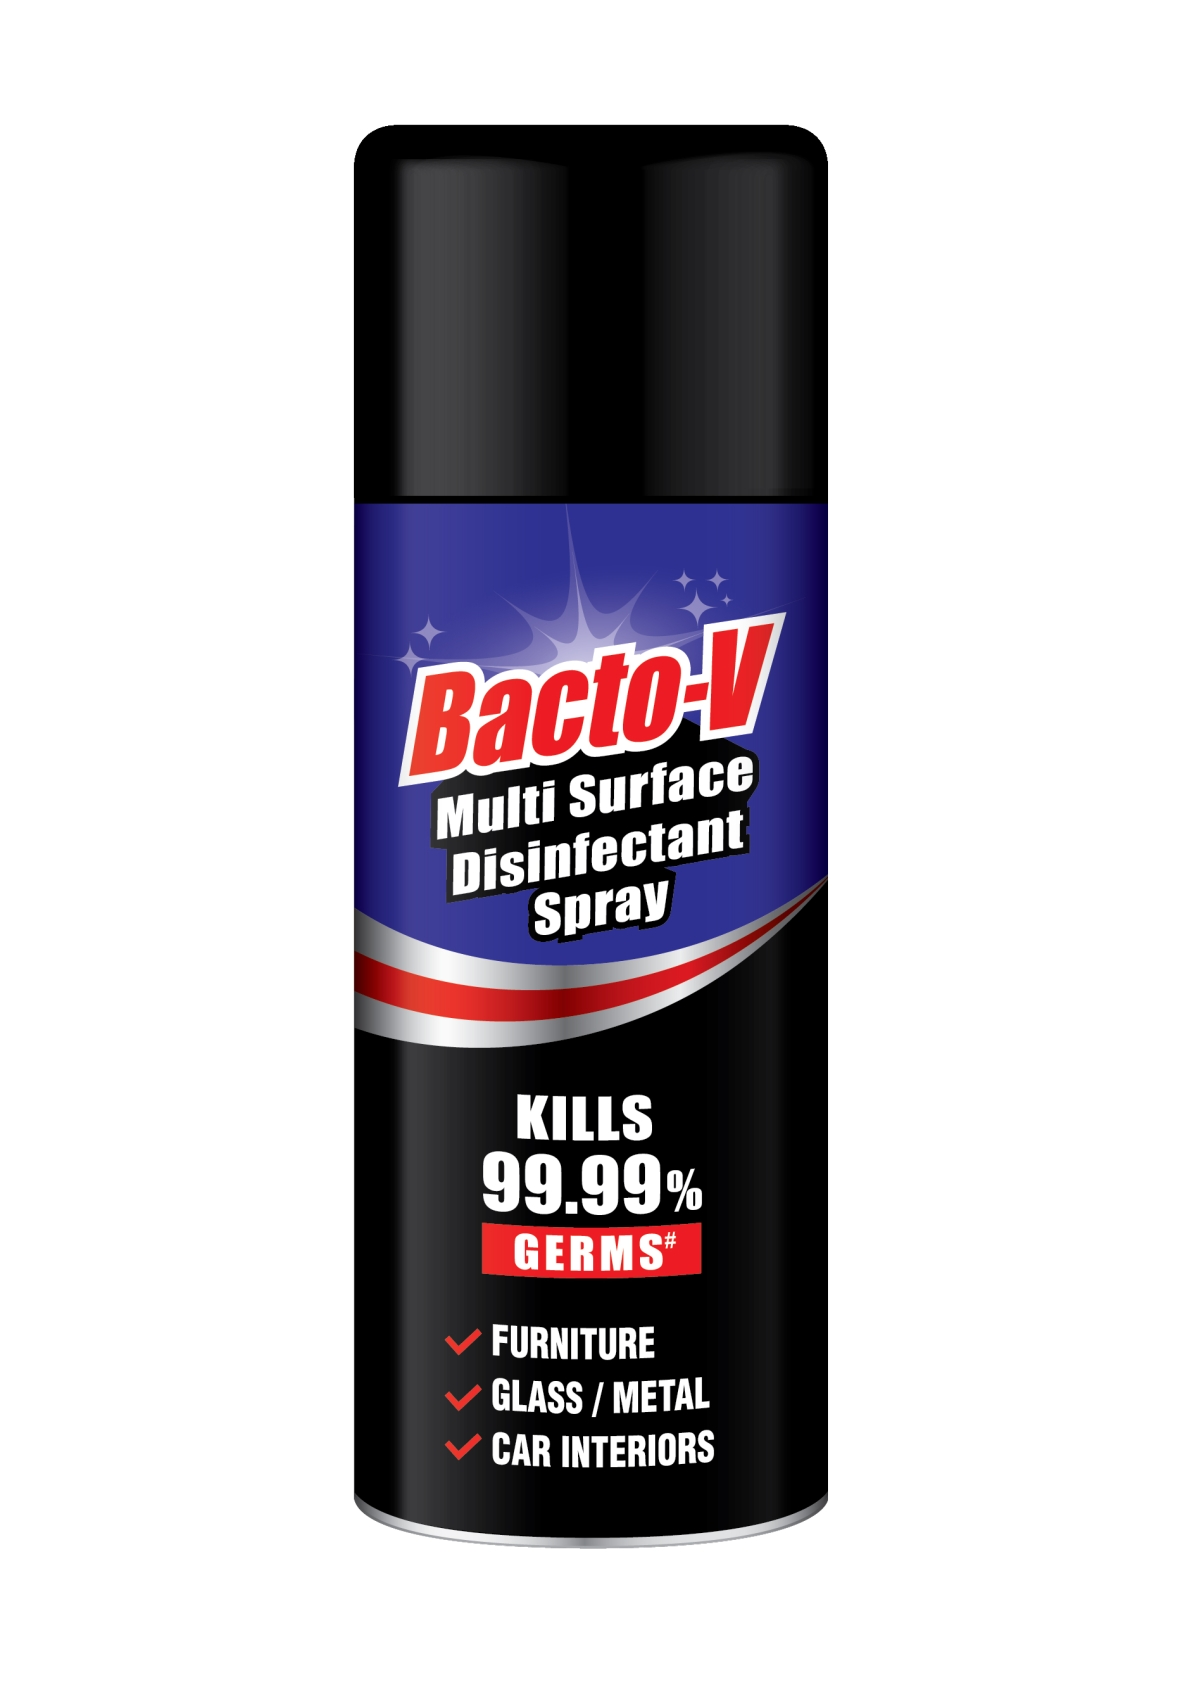 Bacto-V Multi Surface Disinfectant